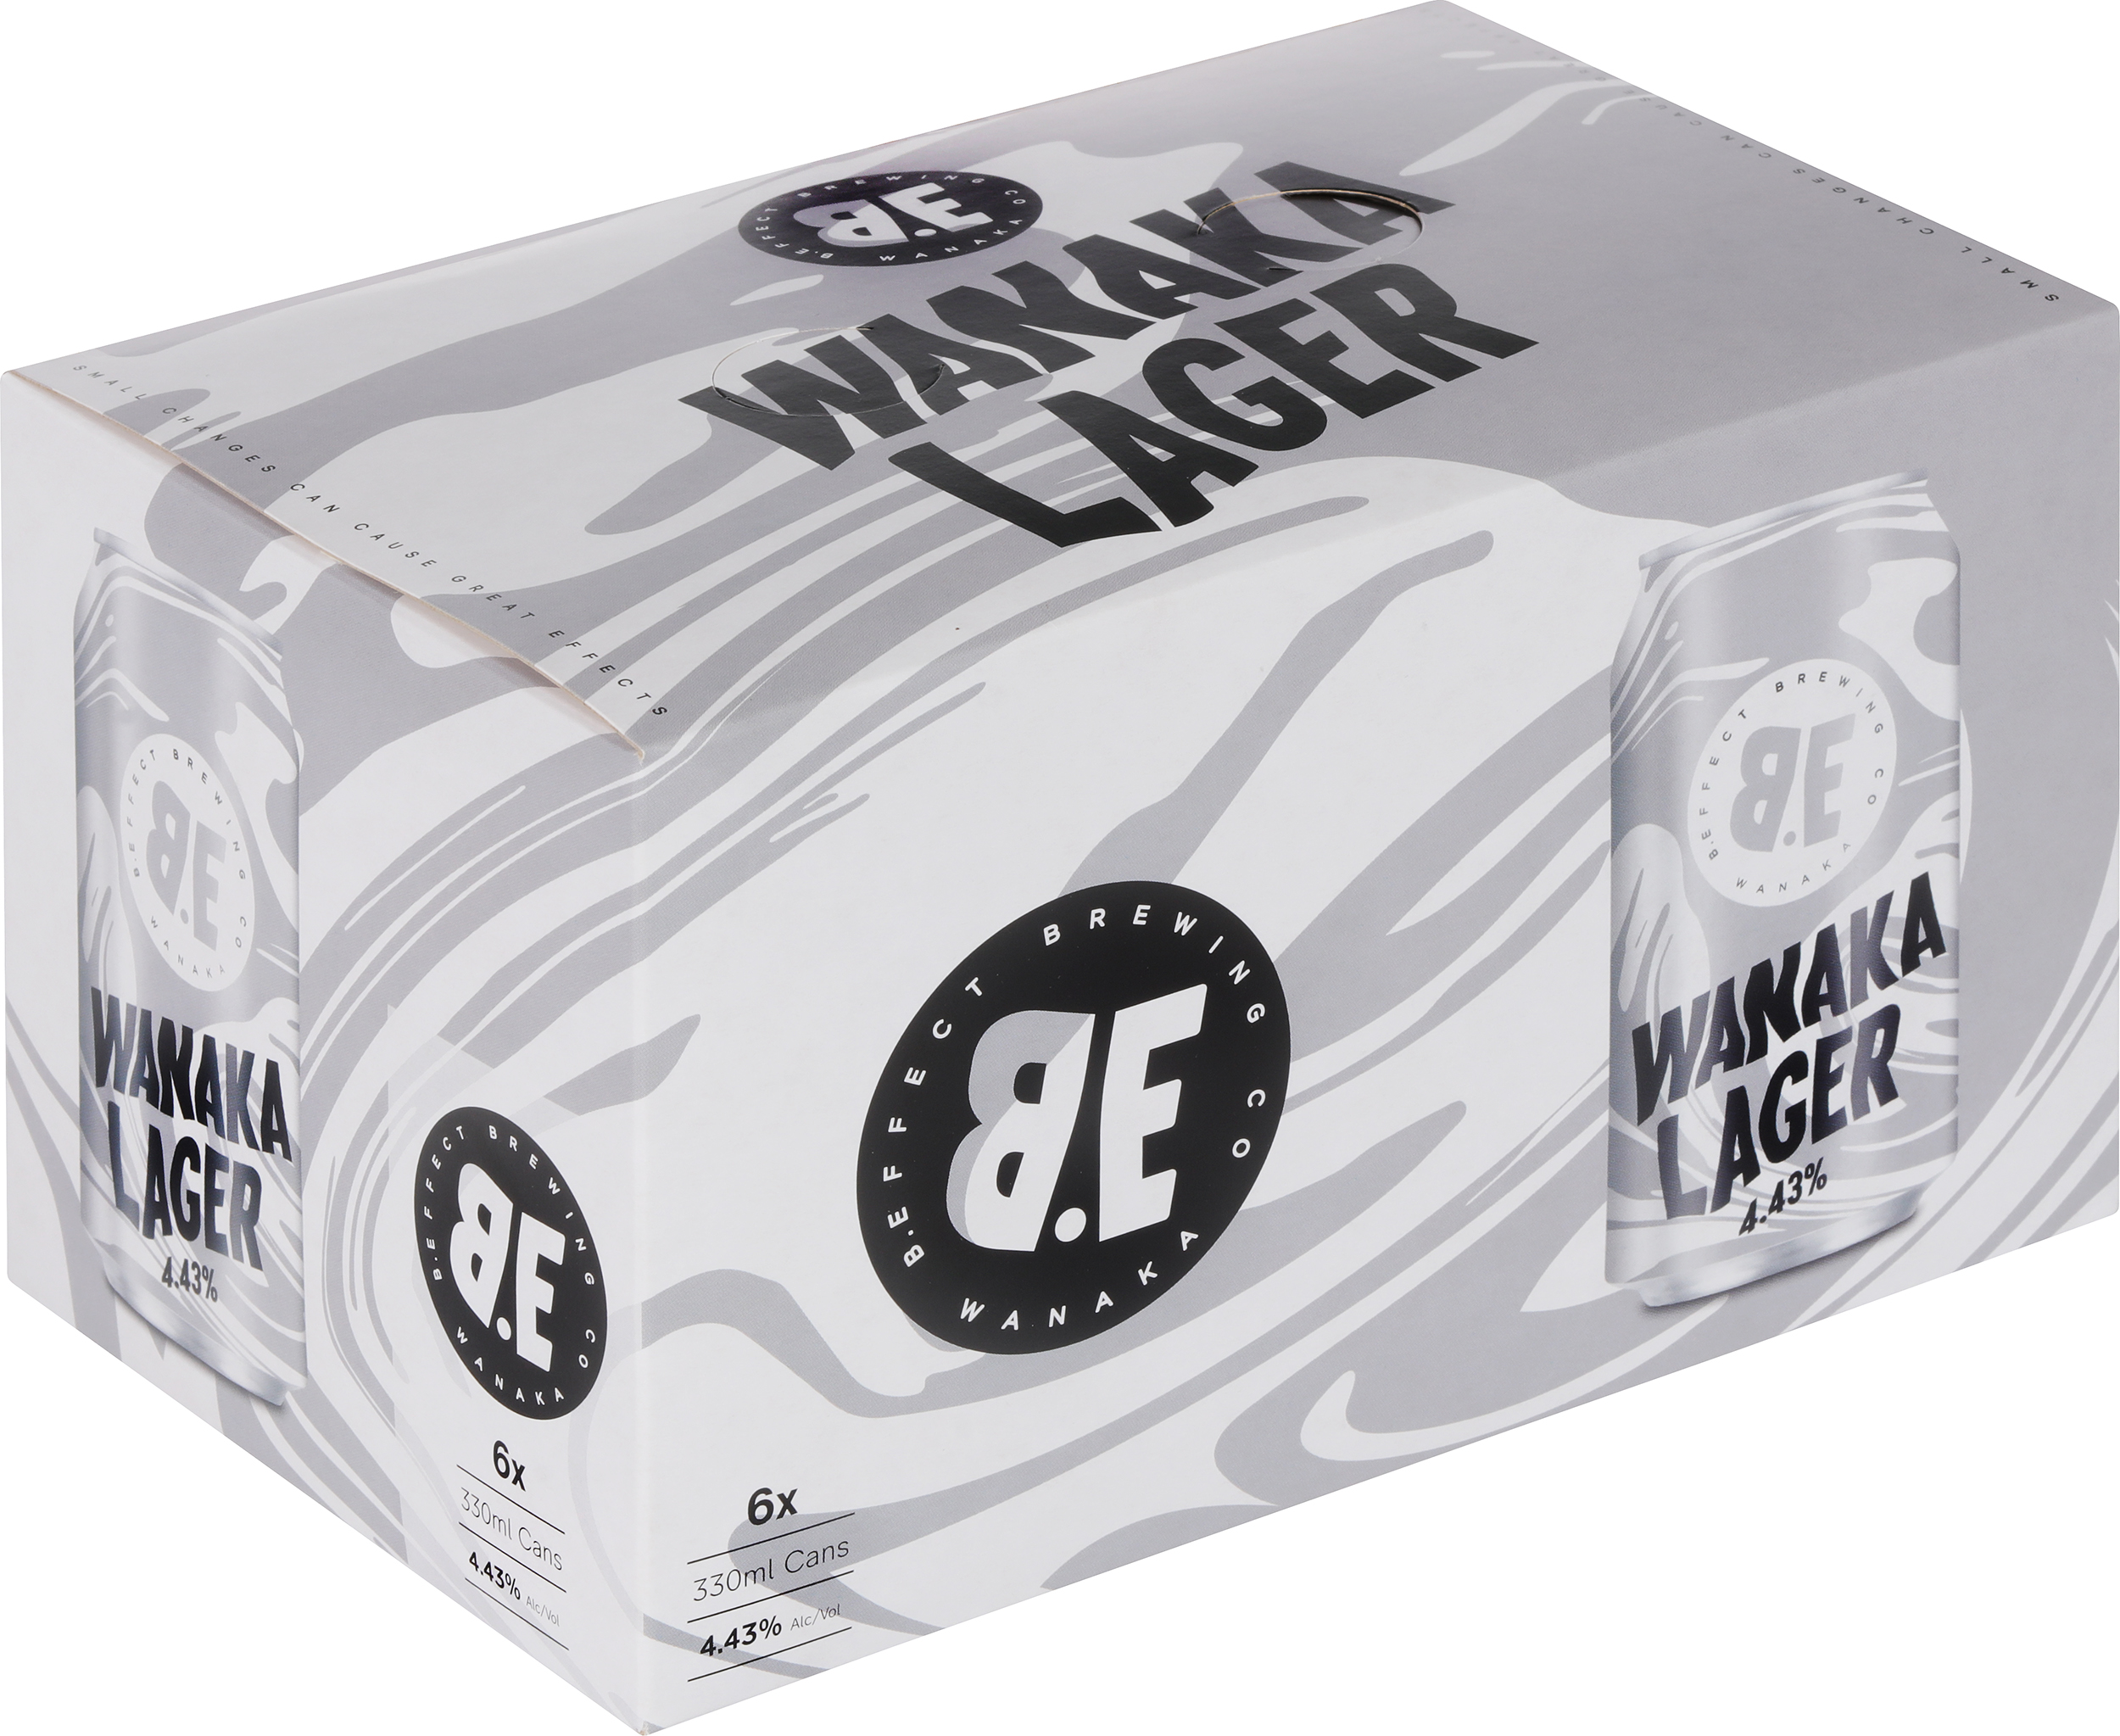 B.Effect Wanaka Lager Can 6 Pack.jpg